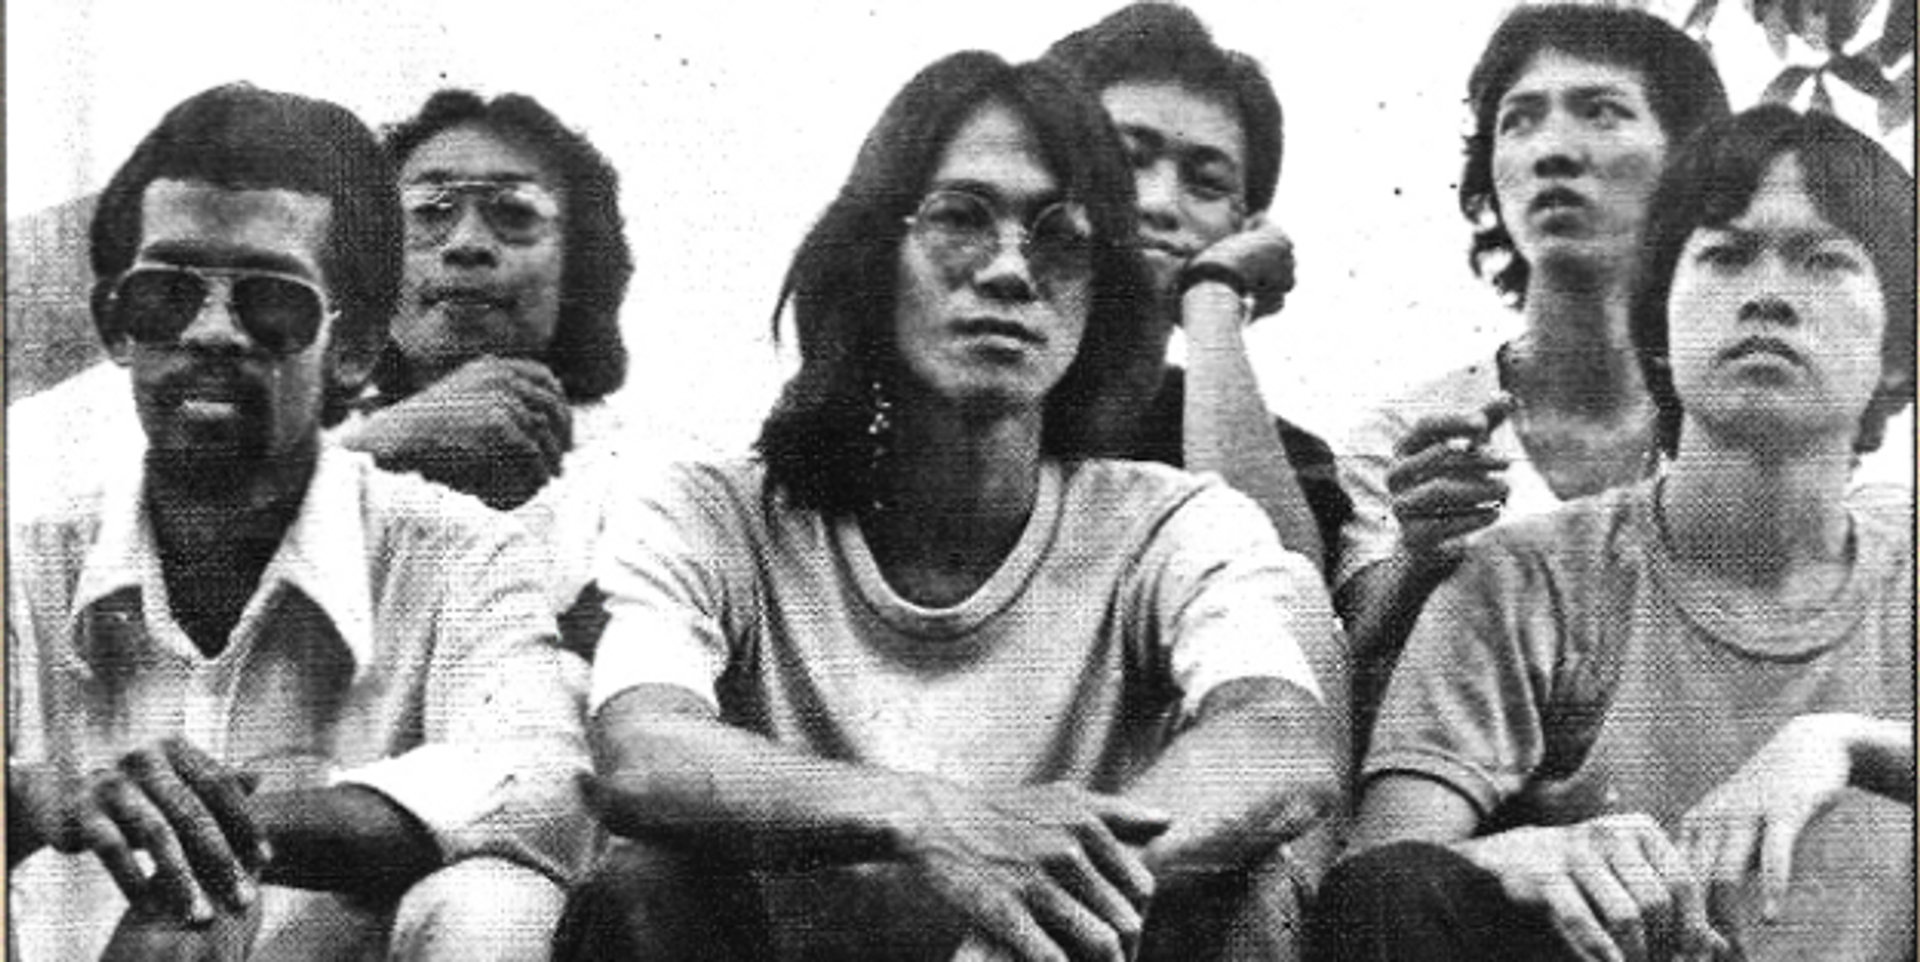 Rocking Good Times celebrates the blues-inflicted side of 60s Singapore music